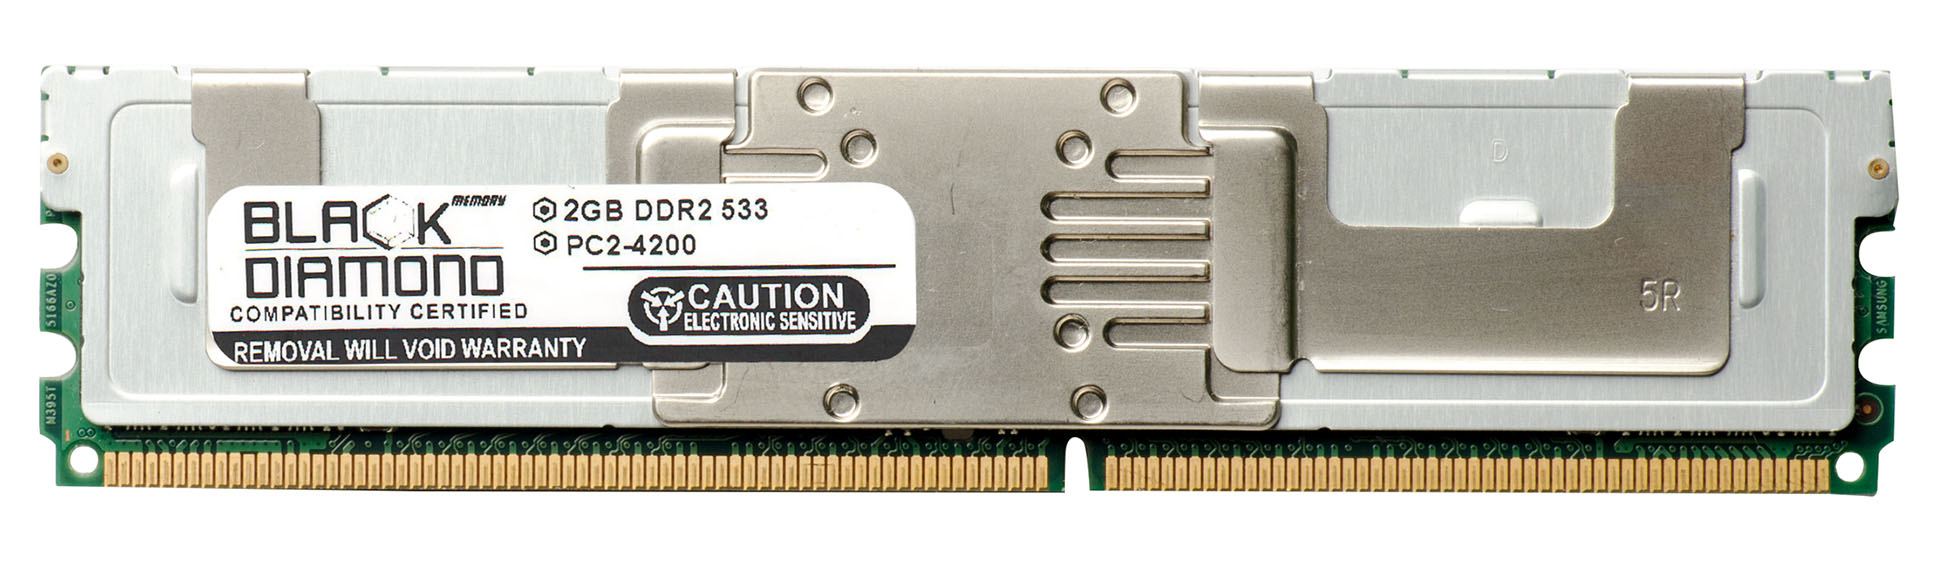 DRIVER FOR MSI 5000P MASTER